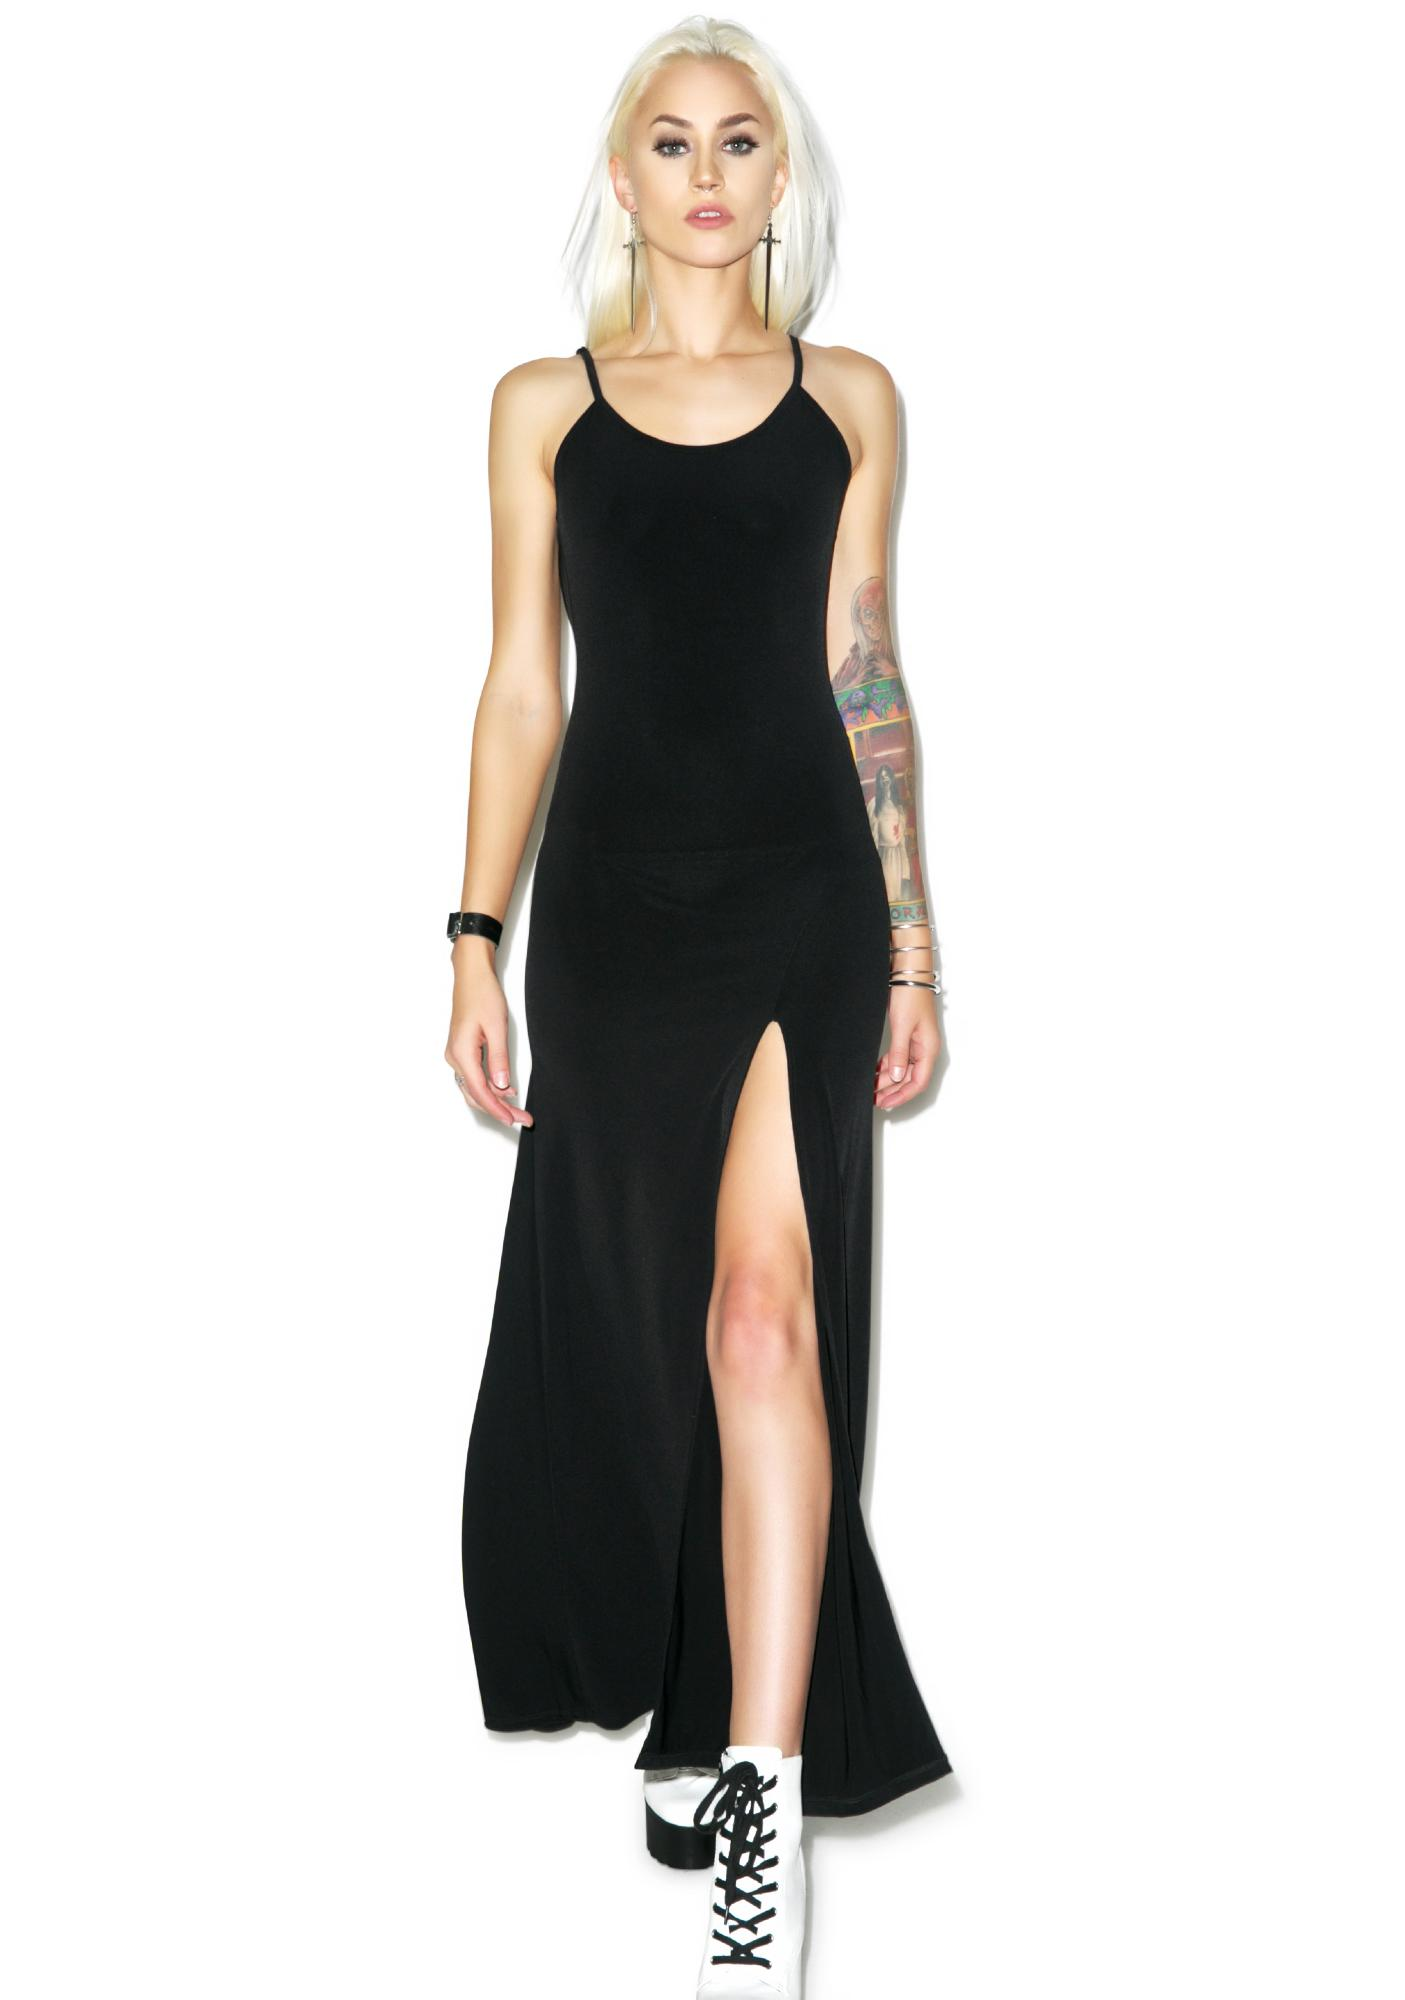 Black Wednesday The Provocateur Dress